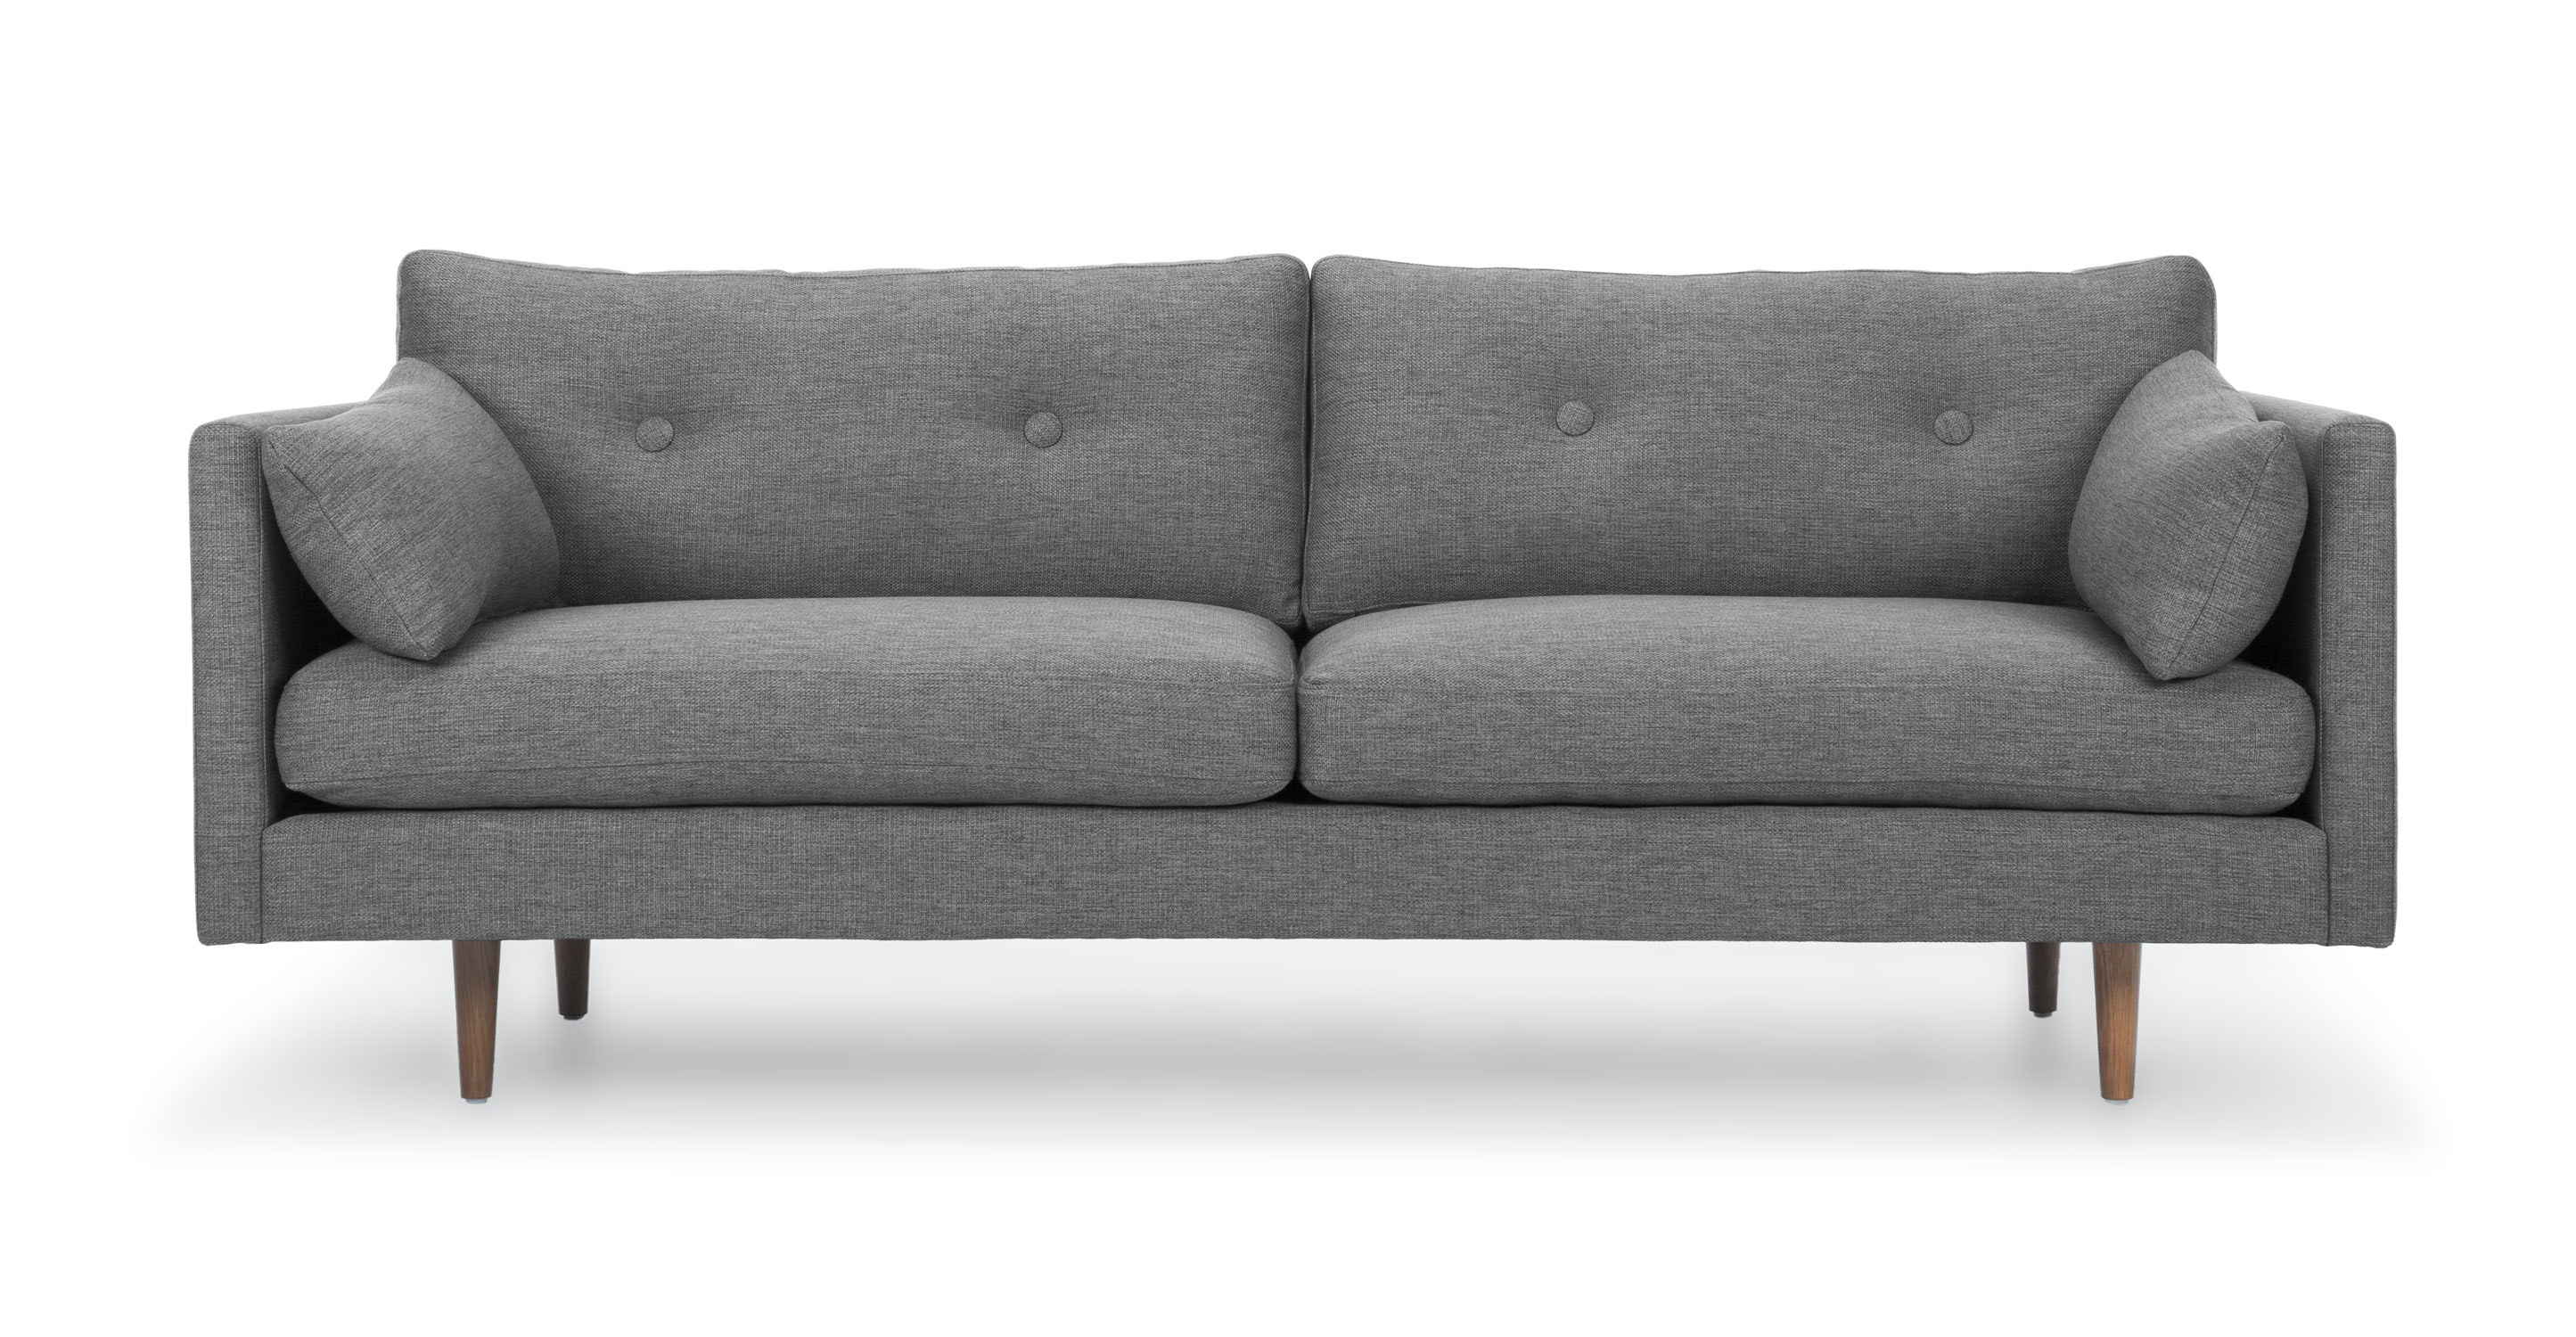 anton gravel gray sofa sofas article modern mid century and scandinavian furniture. Black Bedroom Furniture Sets. Home Design Ideas